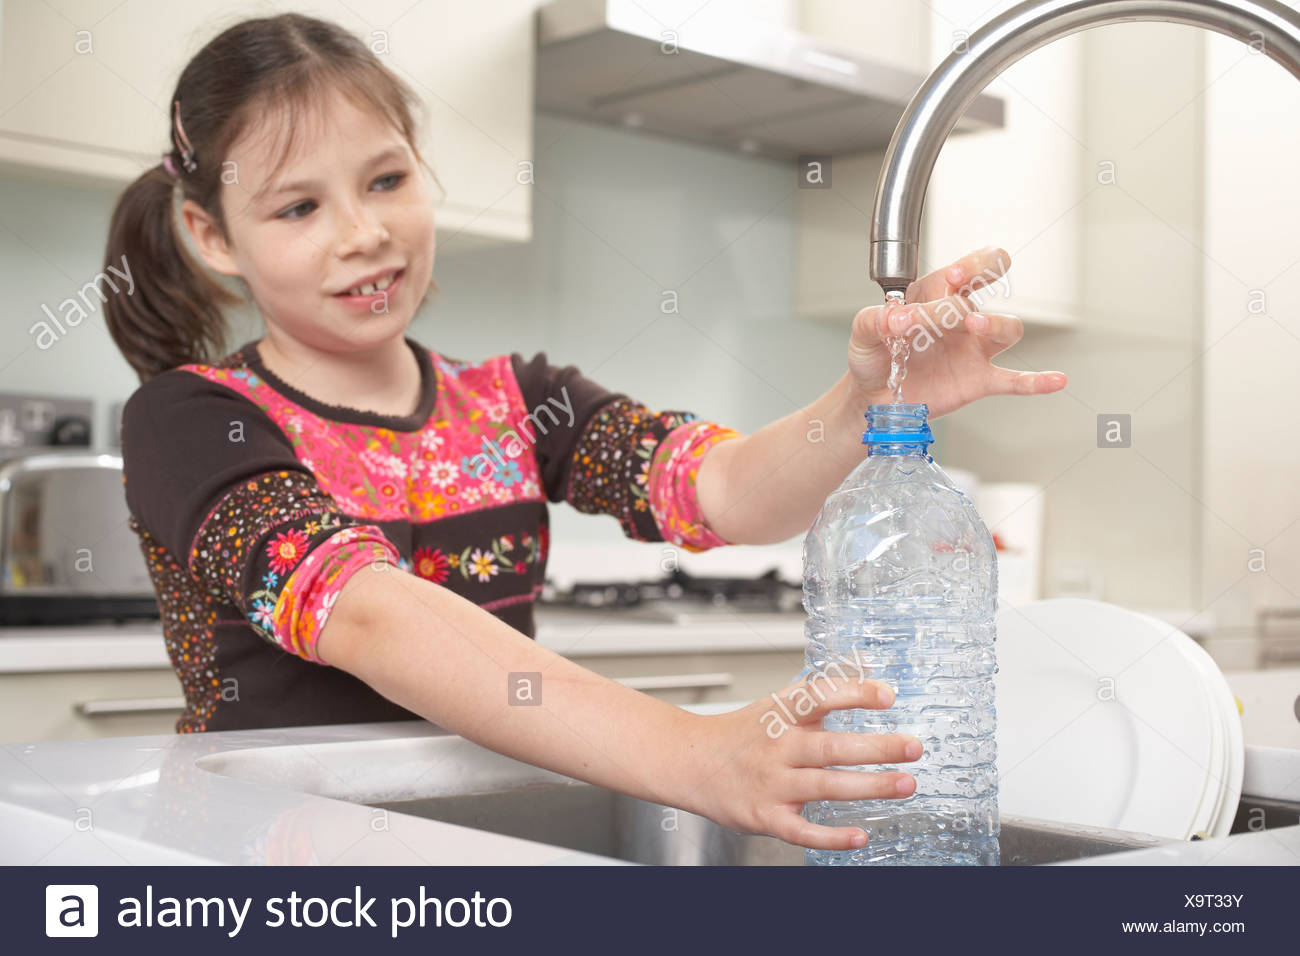 Girl filling up water bottle in kitchen Stock Photo